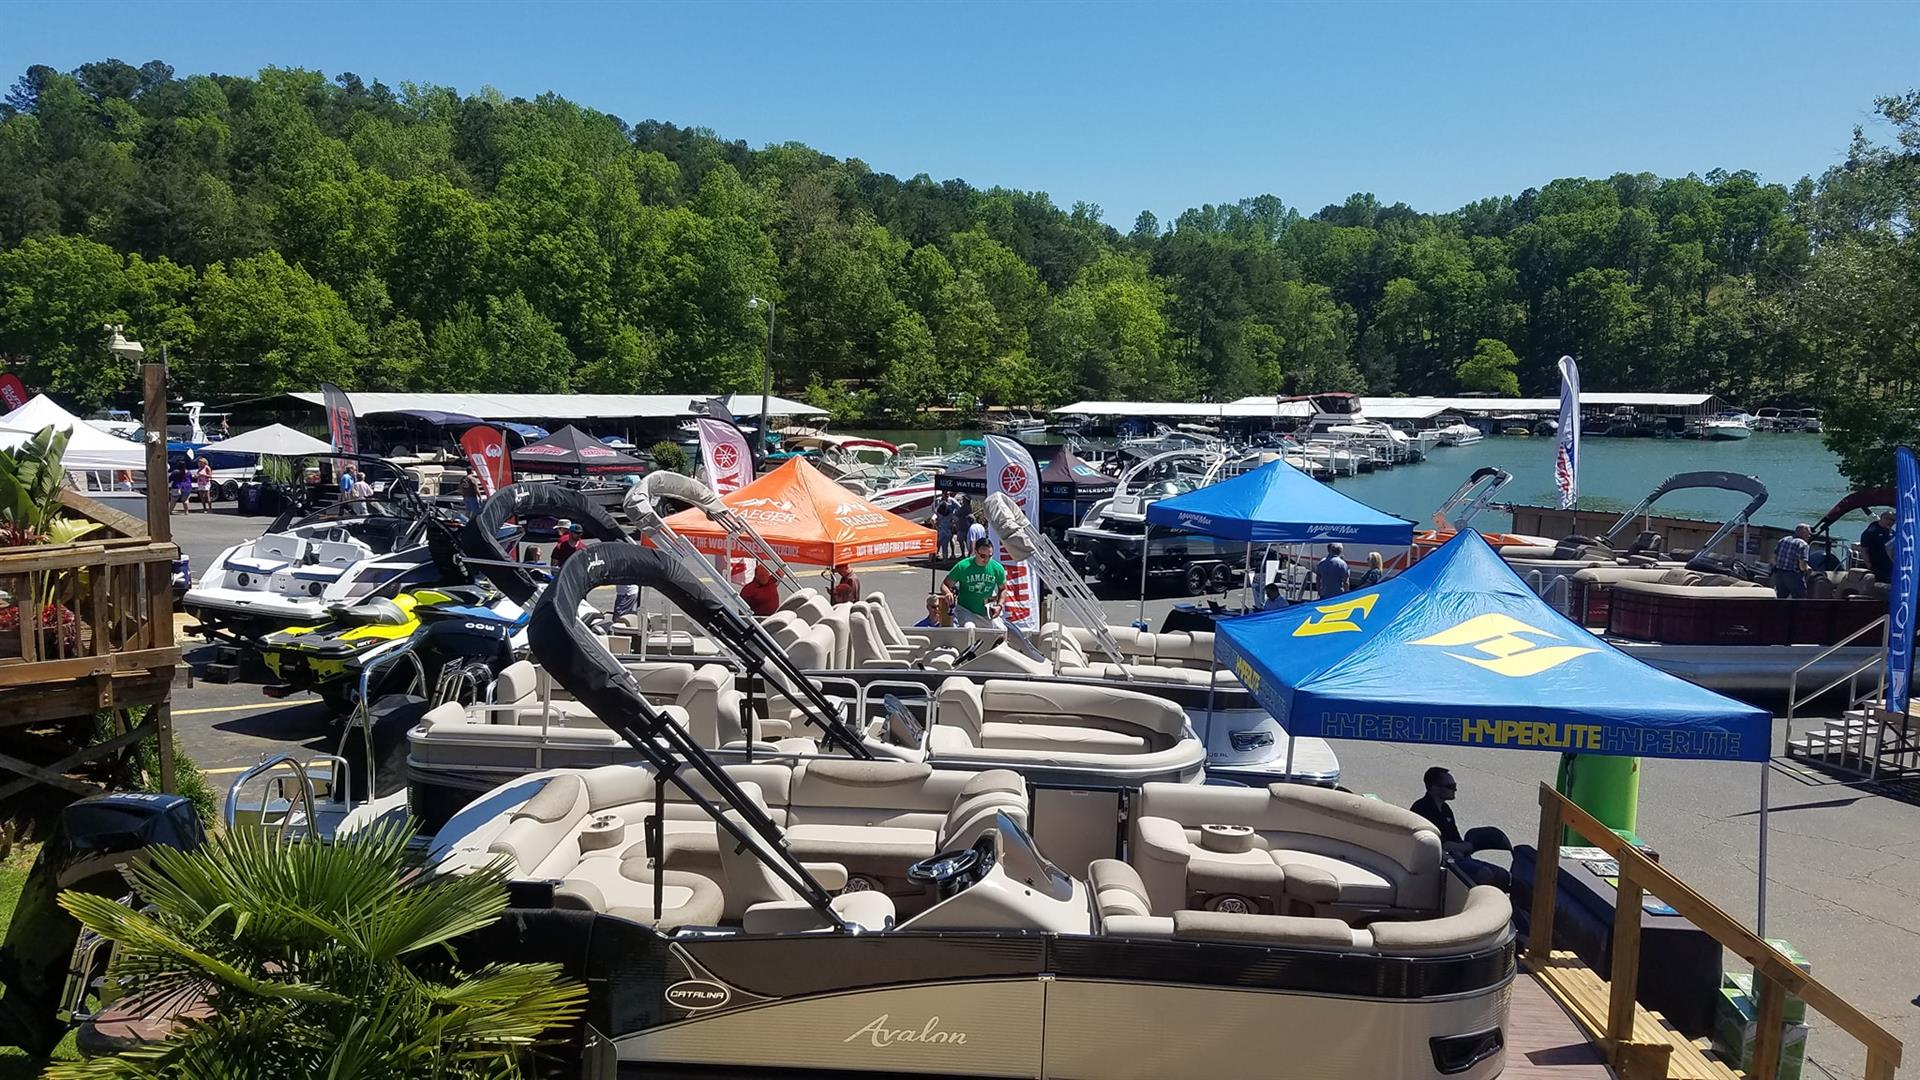 Boats in a parking lot with tents beside a lake